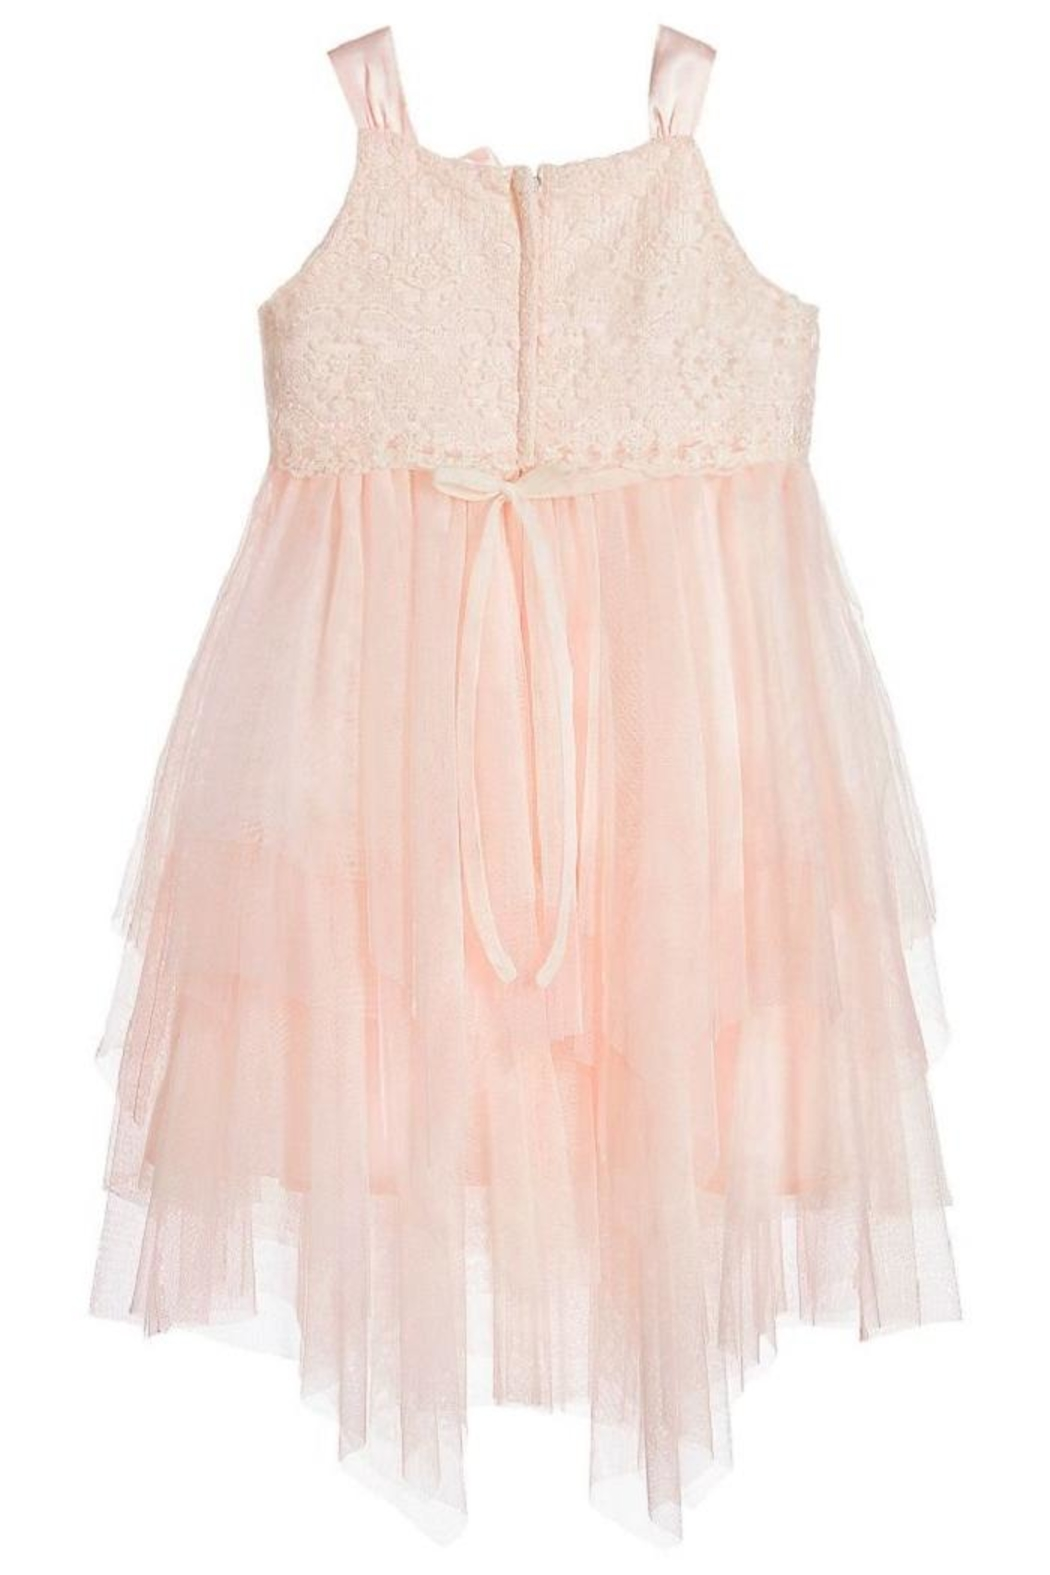 Biscotti Netting Tiered Dress - Front Full Image